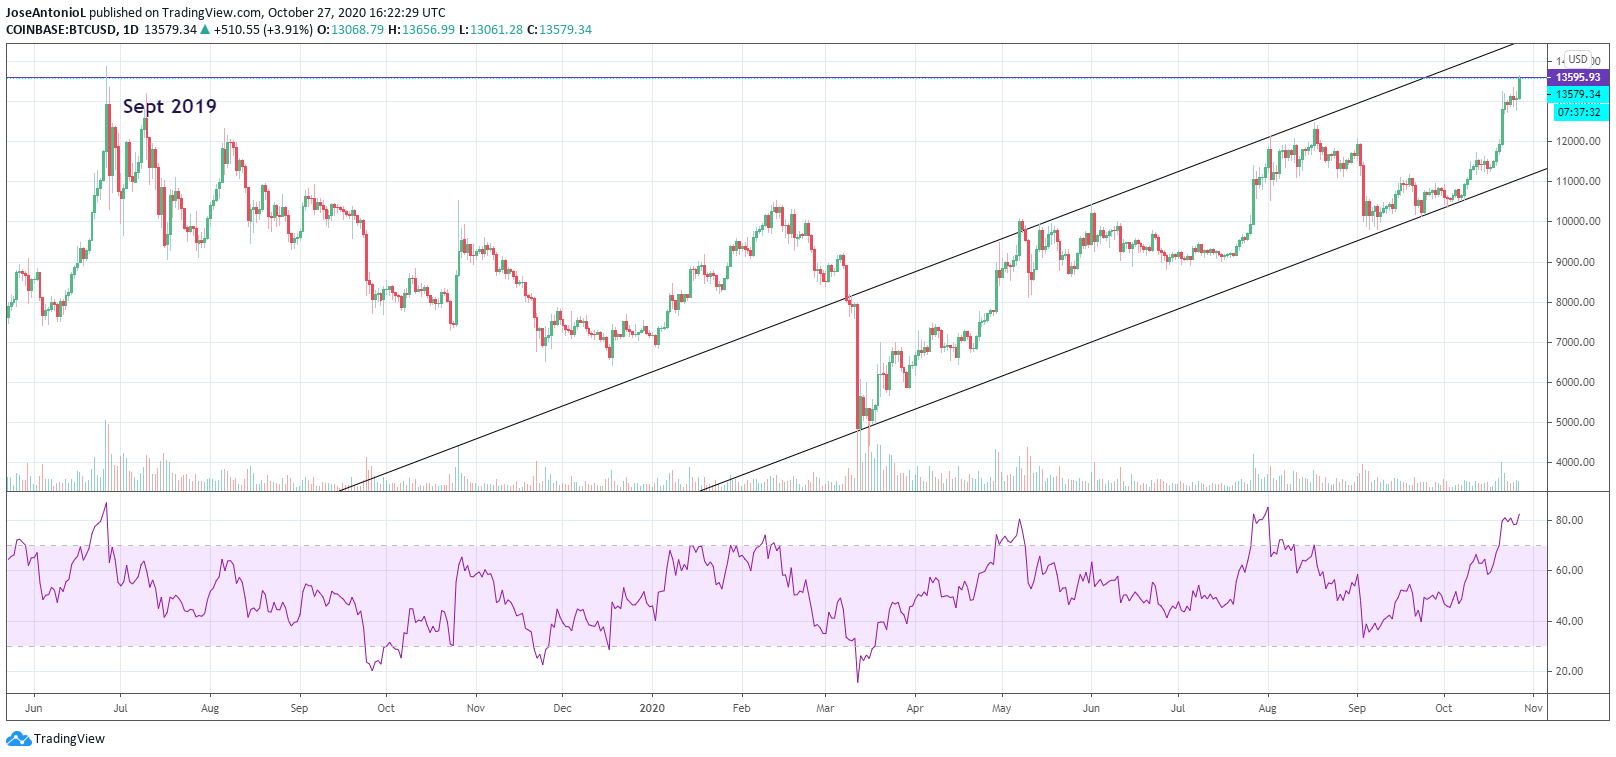 Bitcoin broke its yearly highs. Image: Tradingview